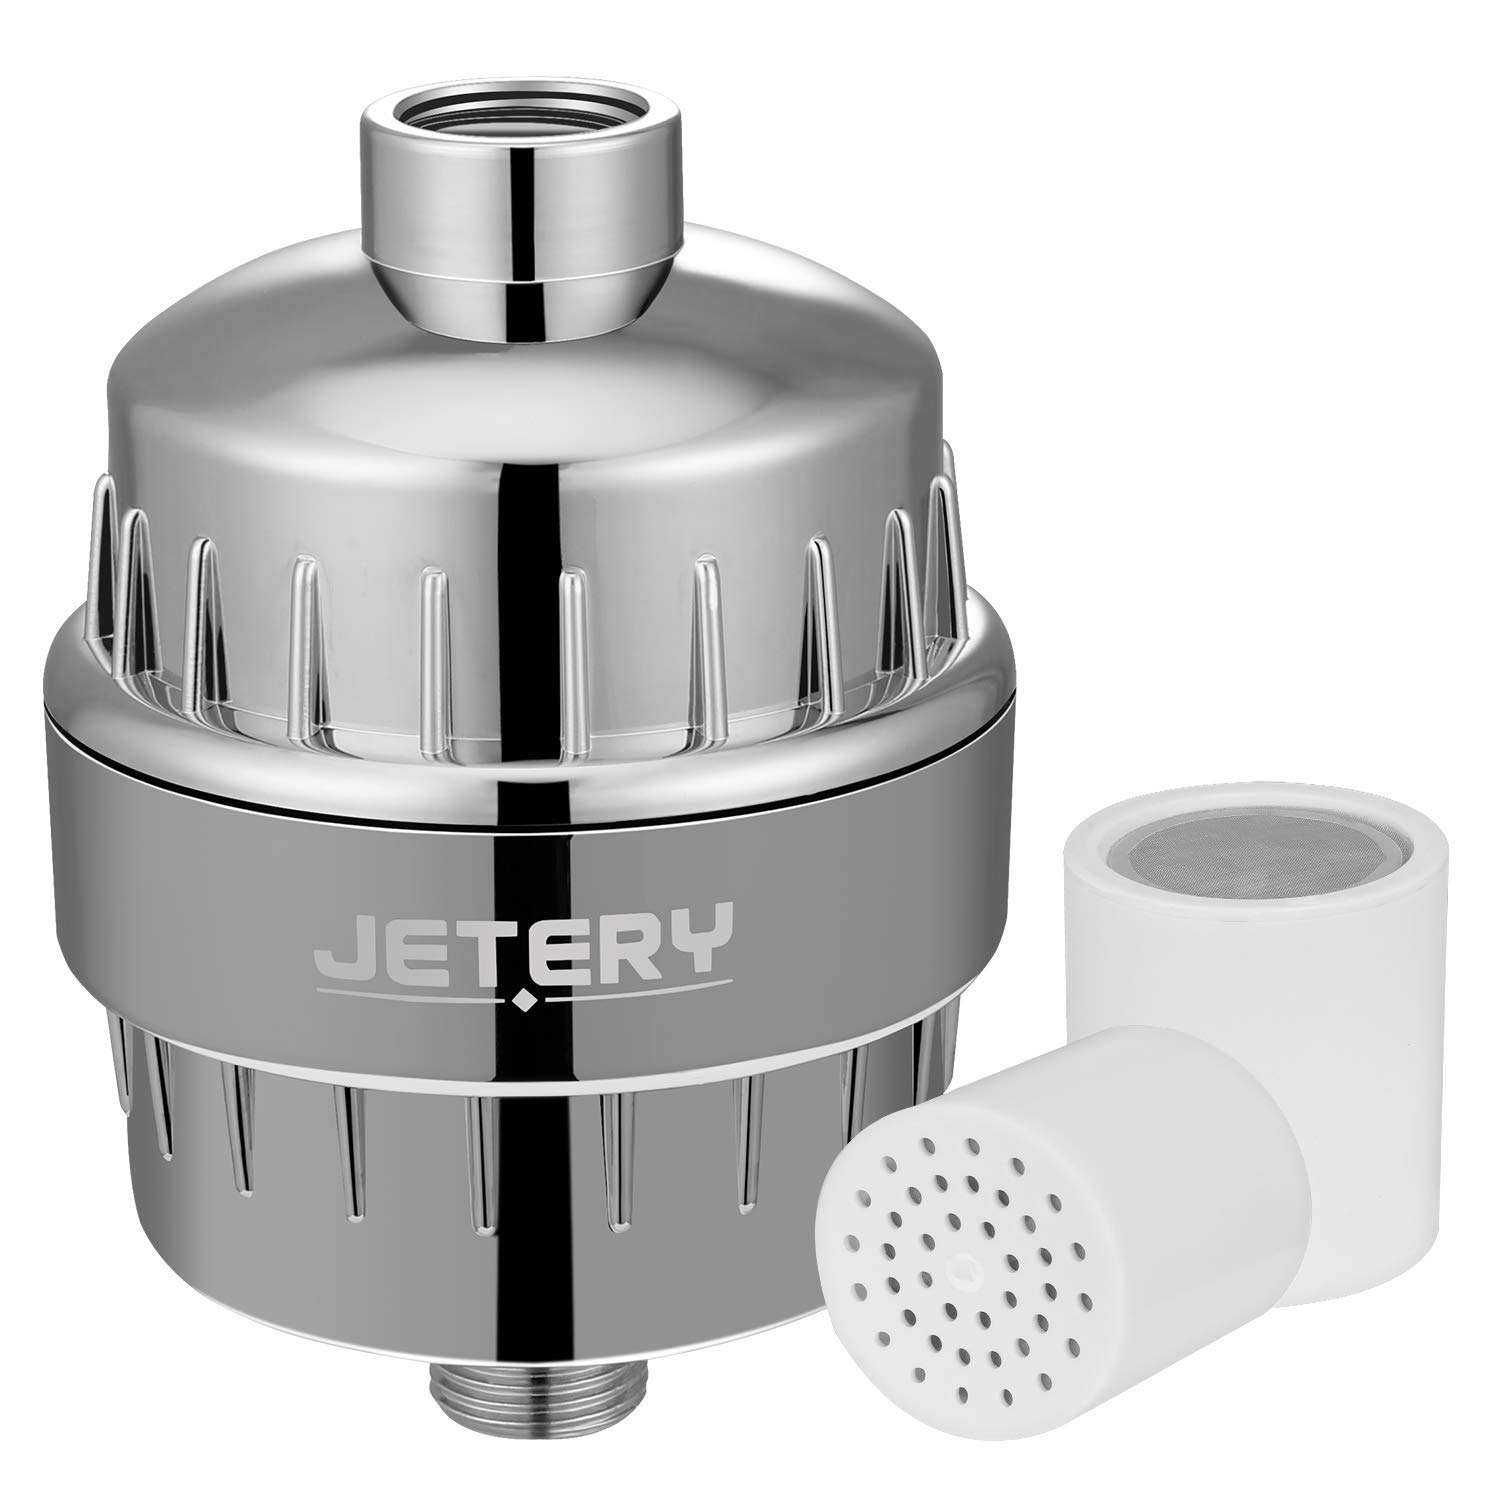 12 Stage Shower Water Filter for Hard Water, Shower Filter Removes Chlorine Universal Showerhead Filter High Output with 2 Replacement Cartridge Filters, Improves Your Hair, Skin and Nails, Chrome by JETERY